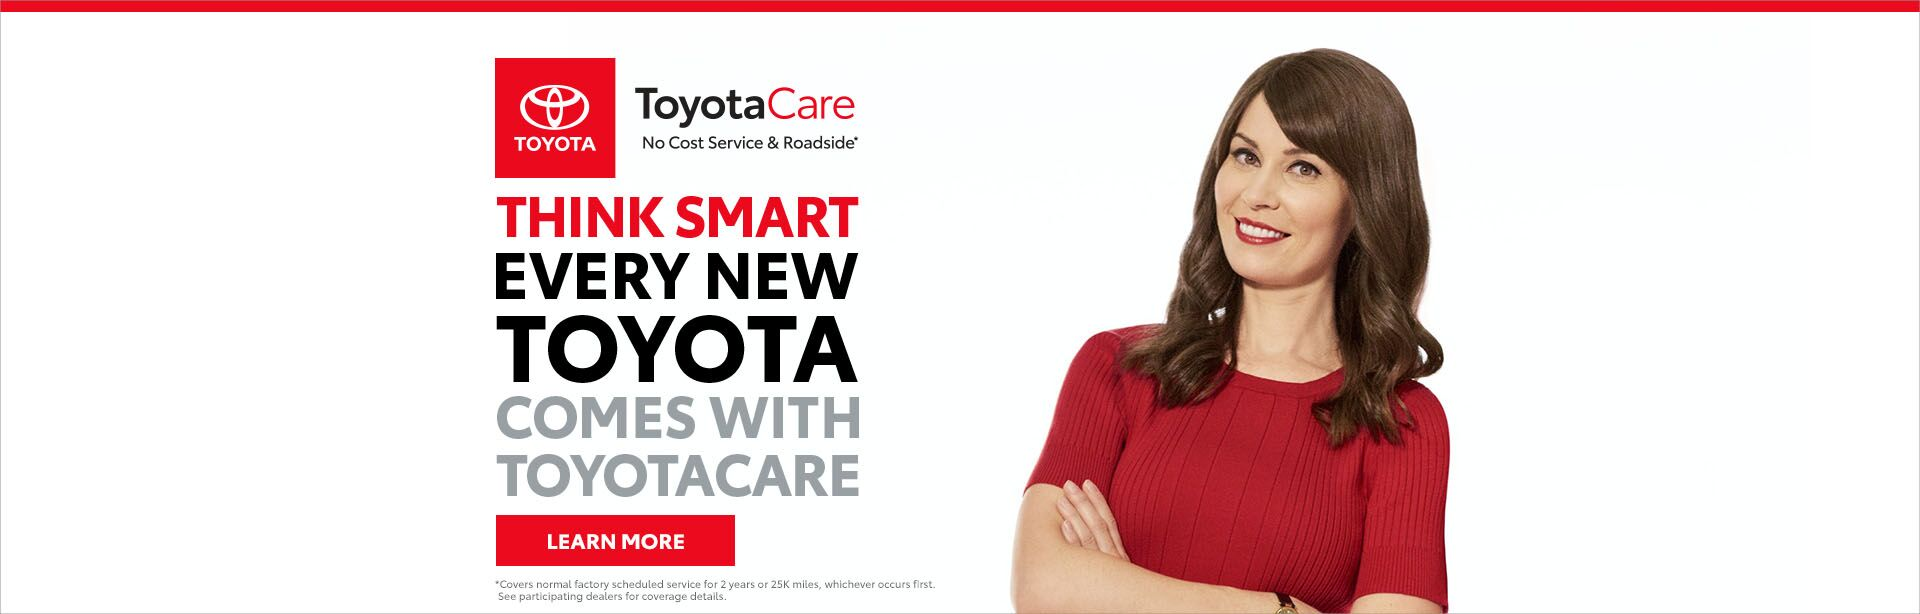 ToyotaCare In Market Dec 2018